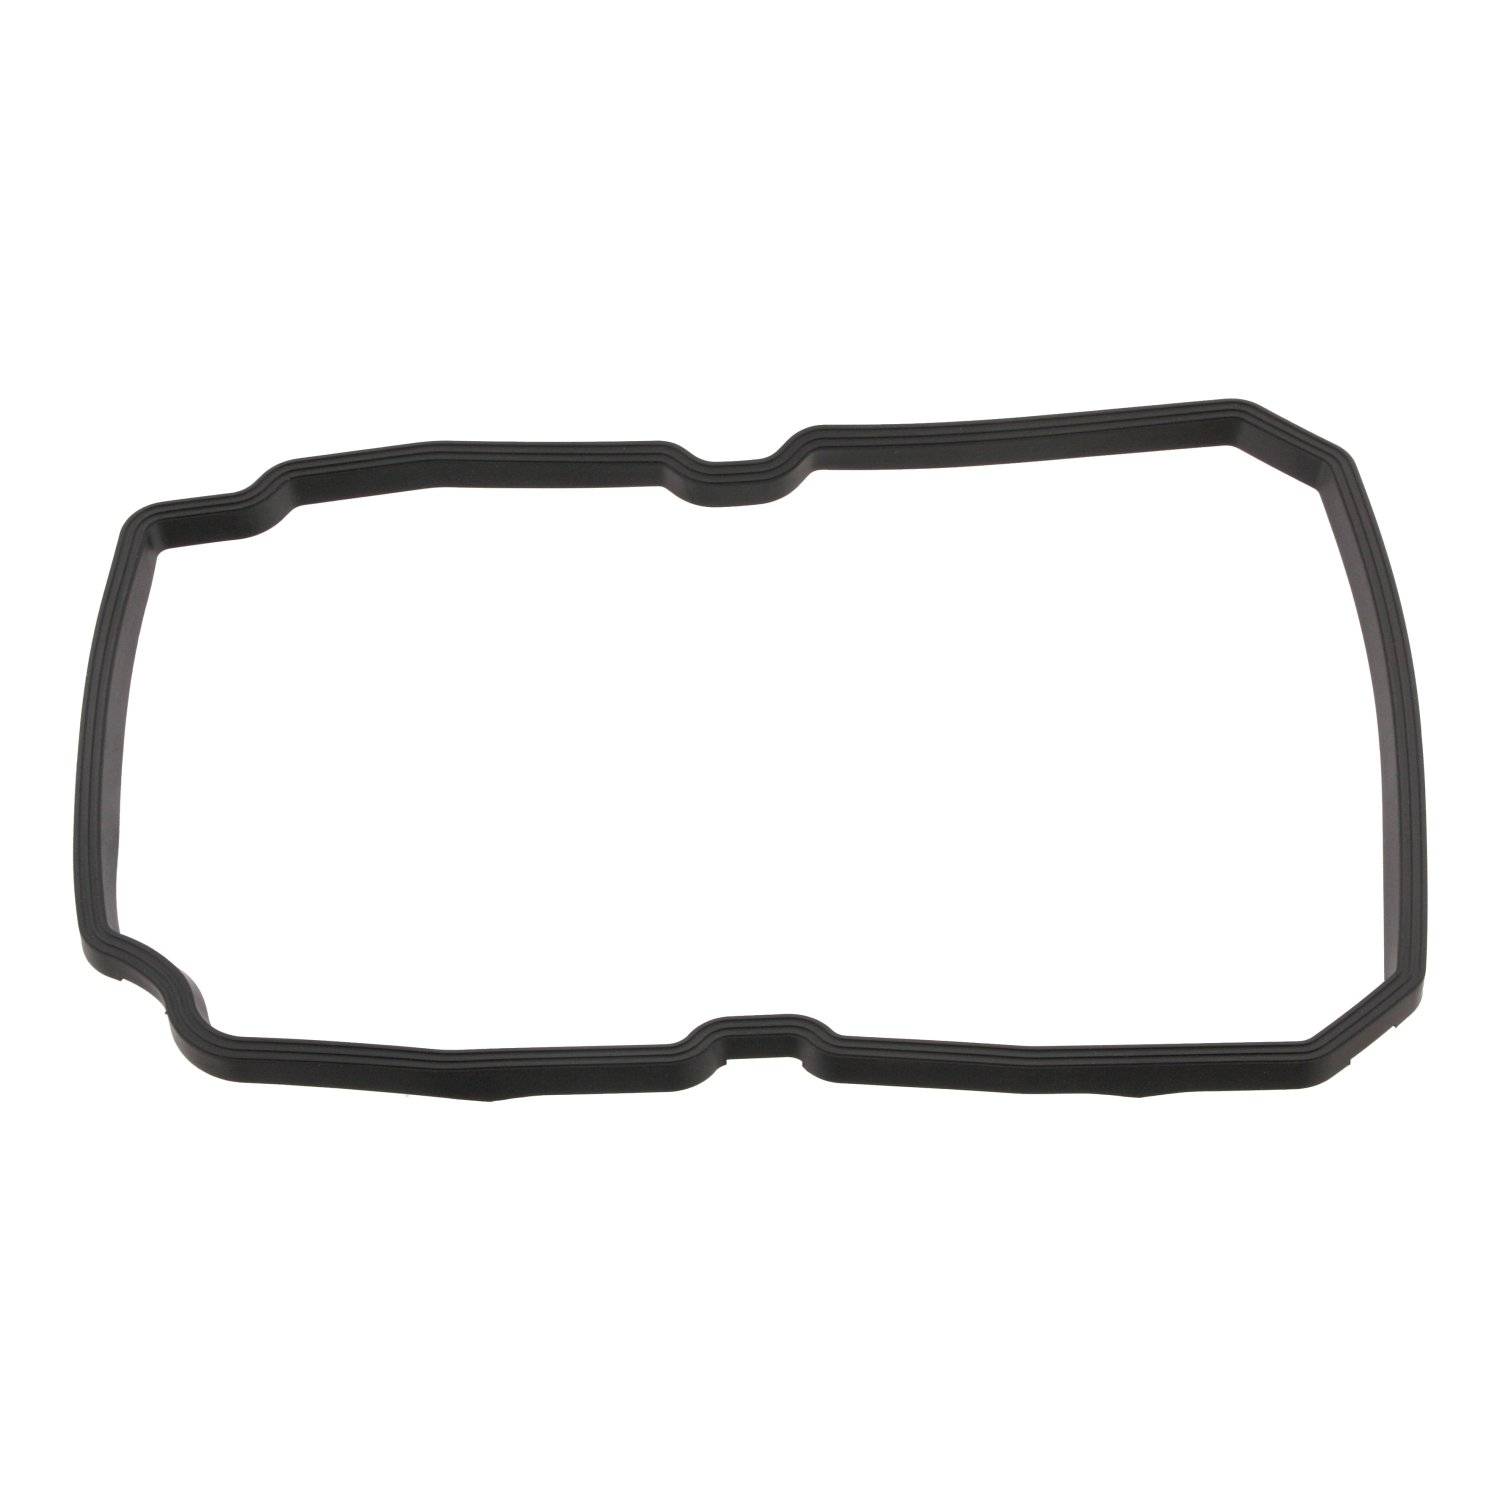 febi bilstein 10072 oil pan gasket for automatic transmission  - Pack of 1